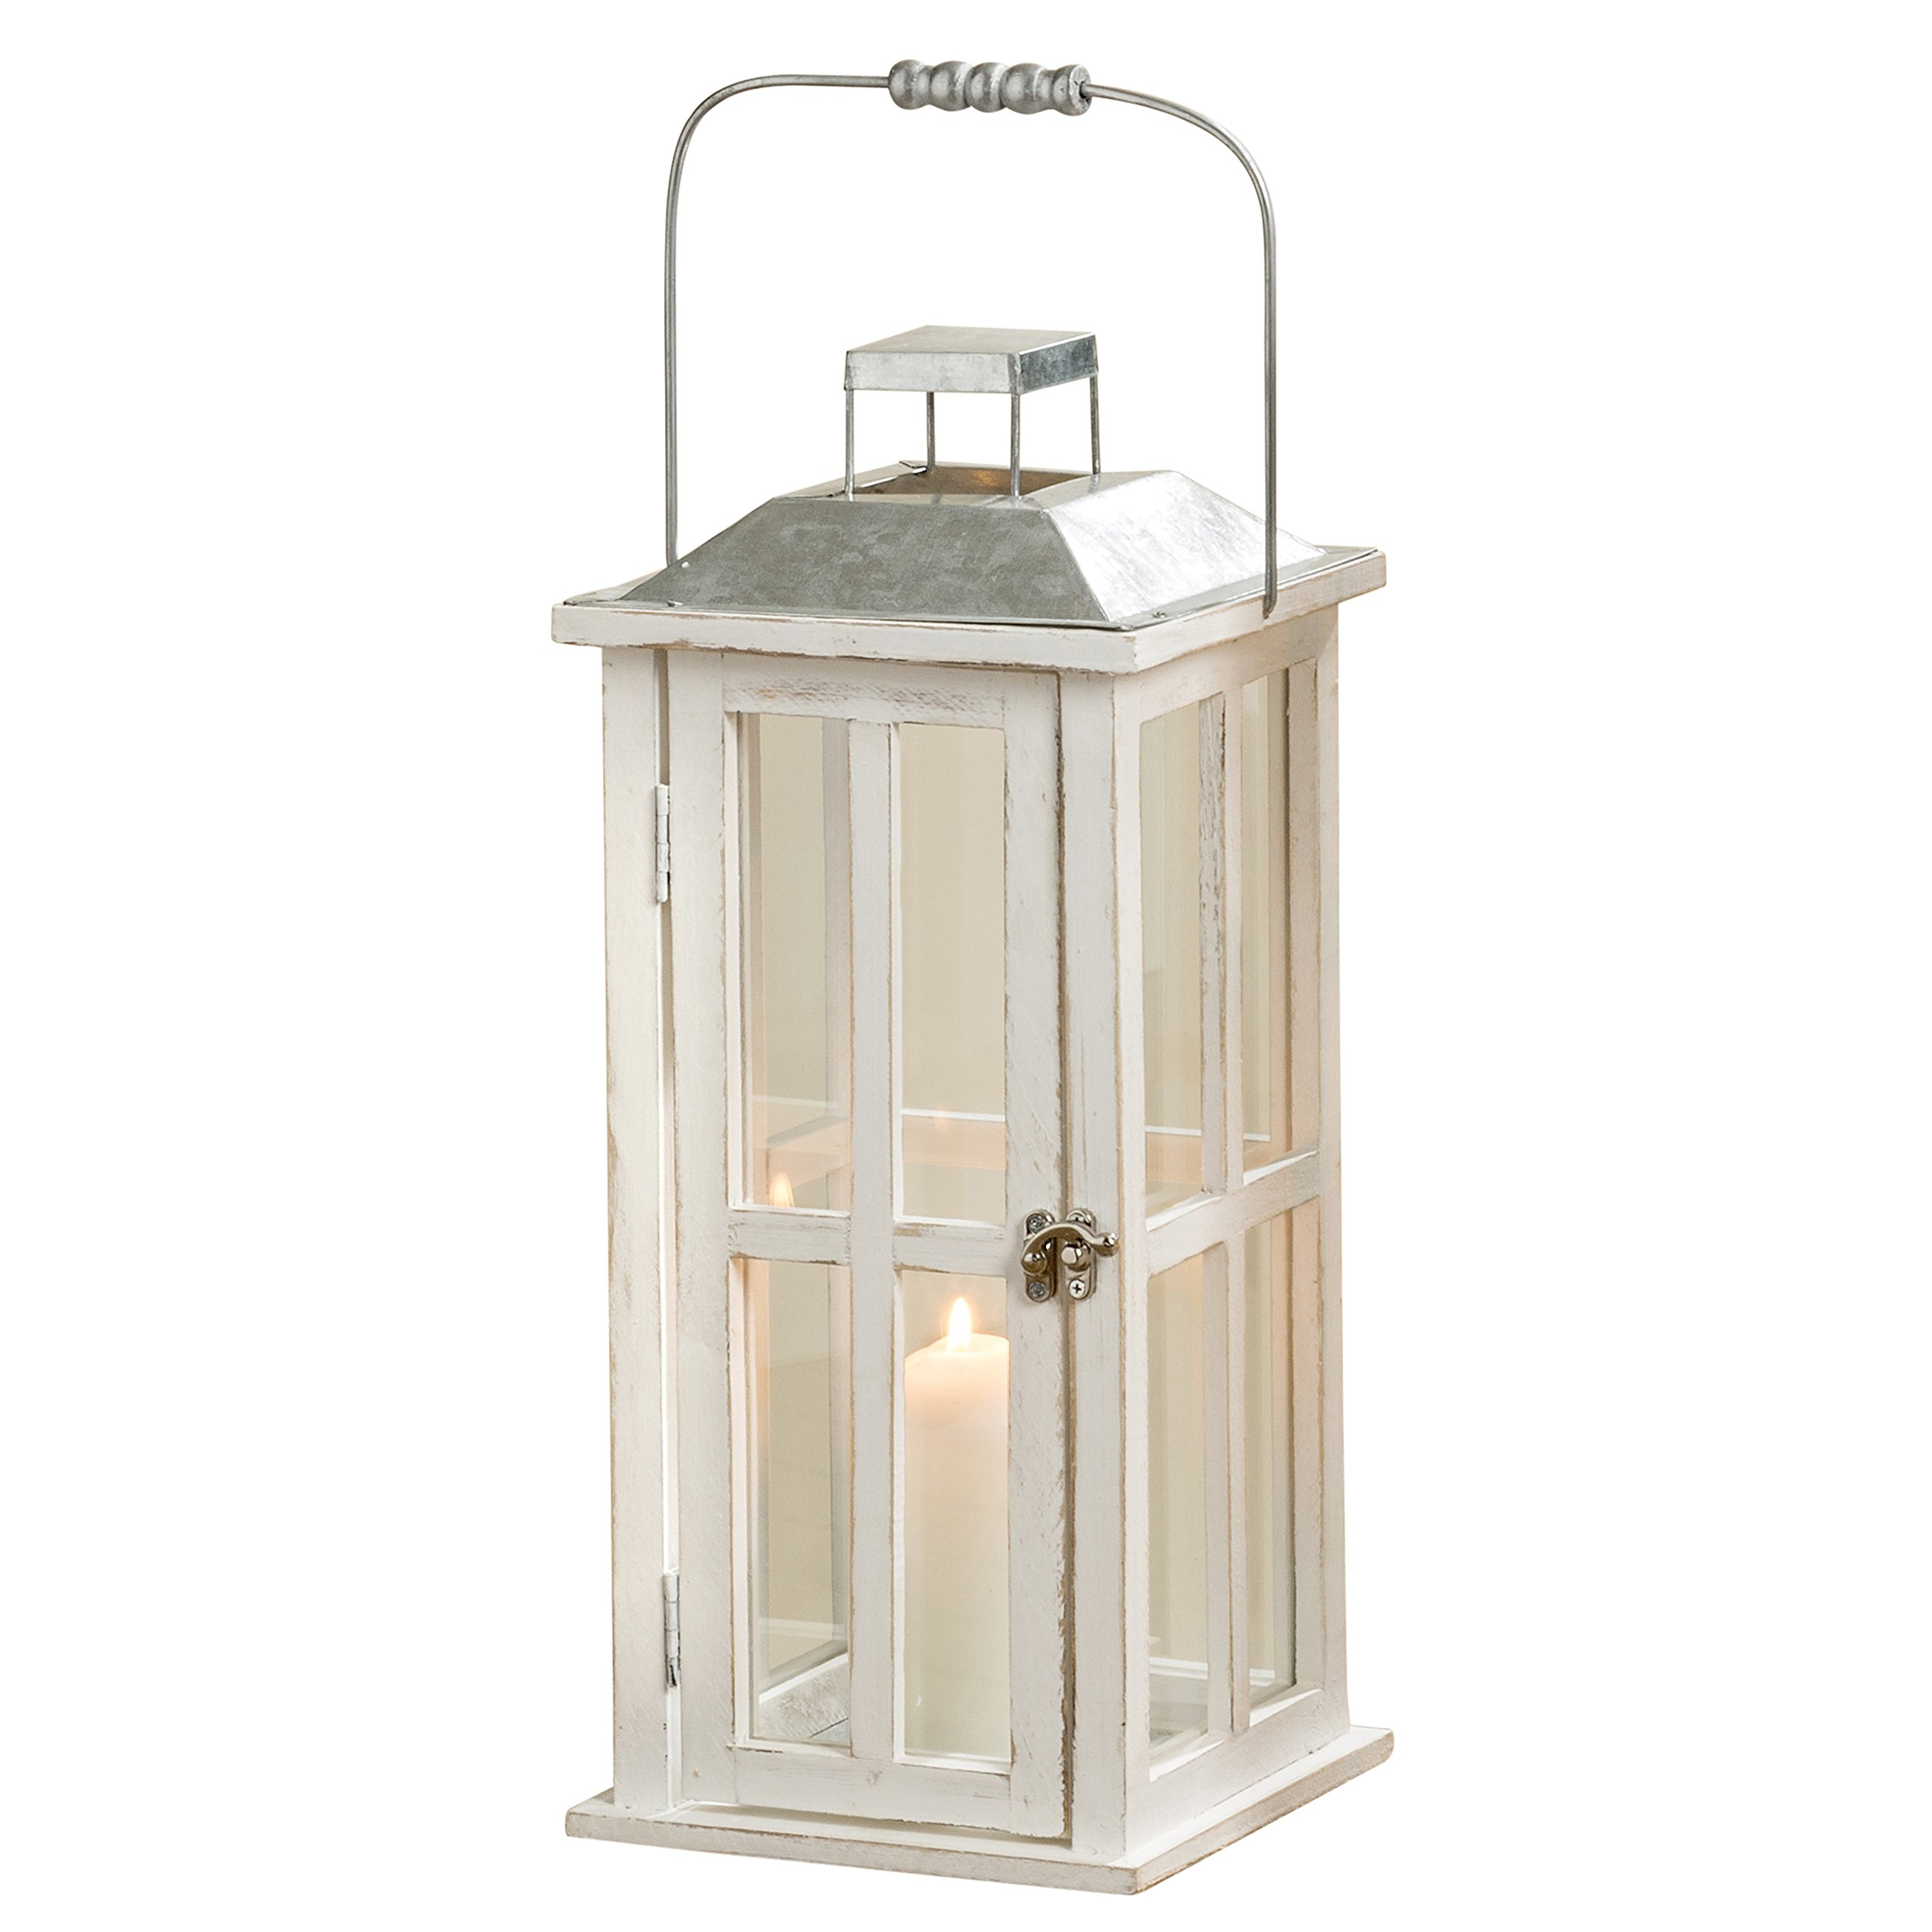 Whole House Worlds The Farm Fair Tall Candle Lantern, Galvanized Metal, Rustic Roof, White Washed Wood, Distressed Shabby Finish, Vintage Style, Over 1 1/2 Ft Tall, (17 3/4 Inches) By by Whole House Worlds